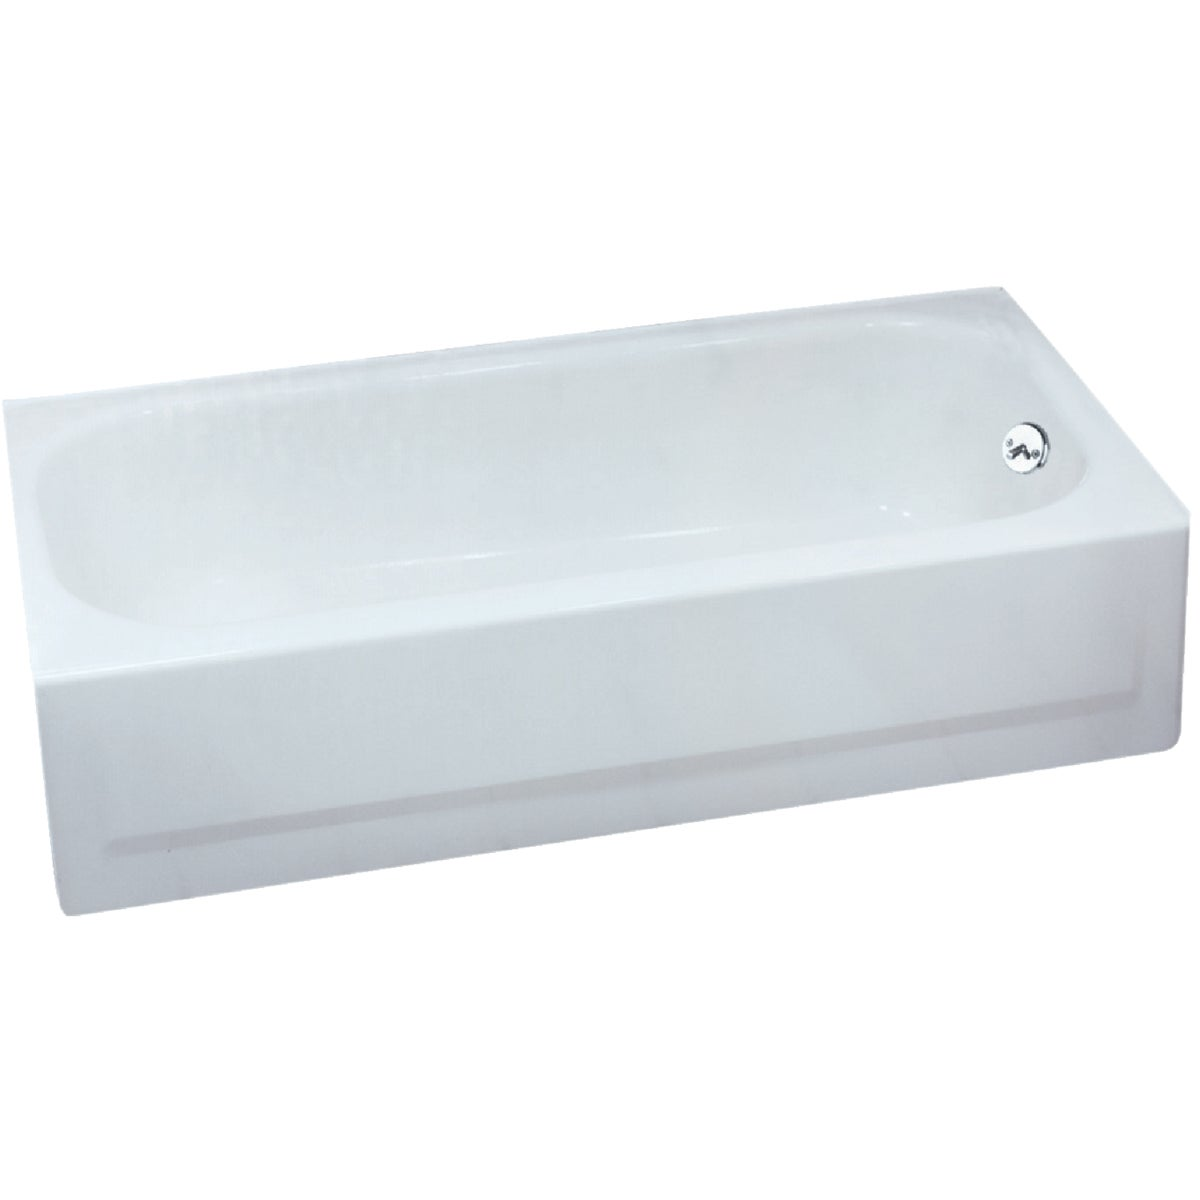 WHITE R/H TUB - 2504-130-01 by Briggs